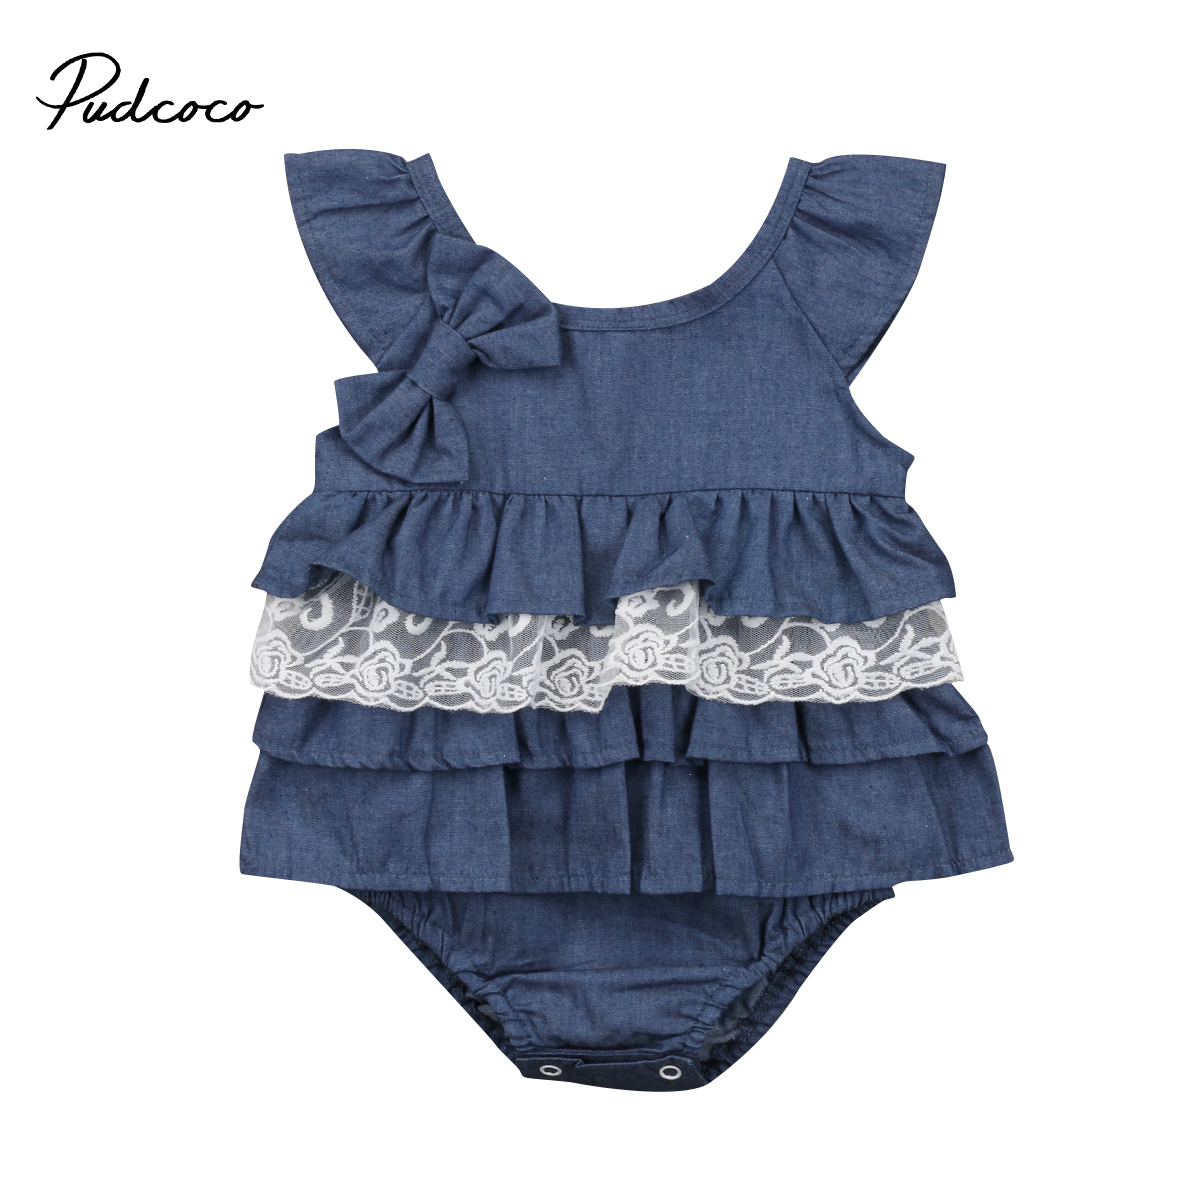 Baby Clothing Newborn Baby Girl Sleeveless Demin Romper Jumpsuit Baby Girl Tutu Dress Clothes Outfits 0-18M emmababy summer newborn infant baby girl ruffles sleeveless romper flamingo jumpsuit sunsuit clothes outfits baby clothing